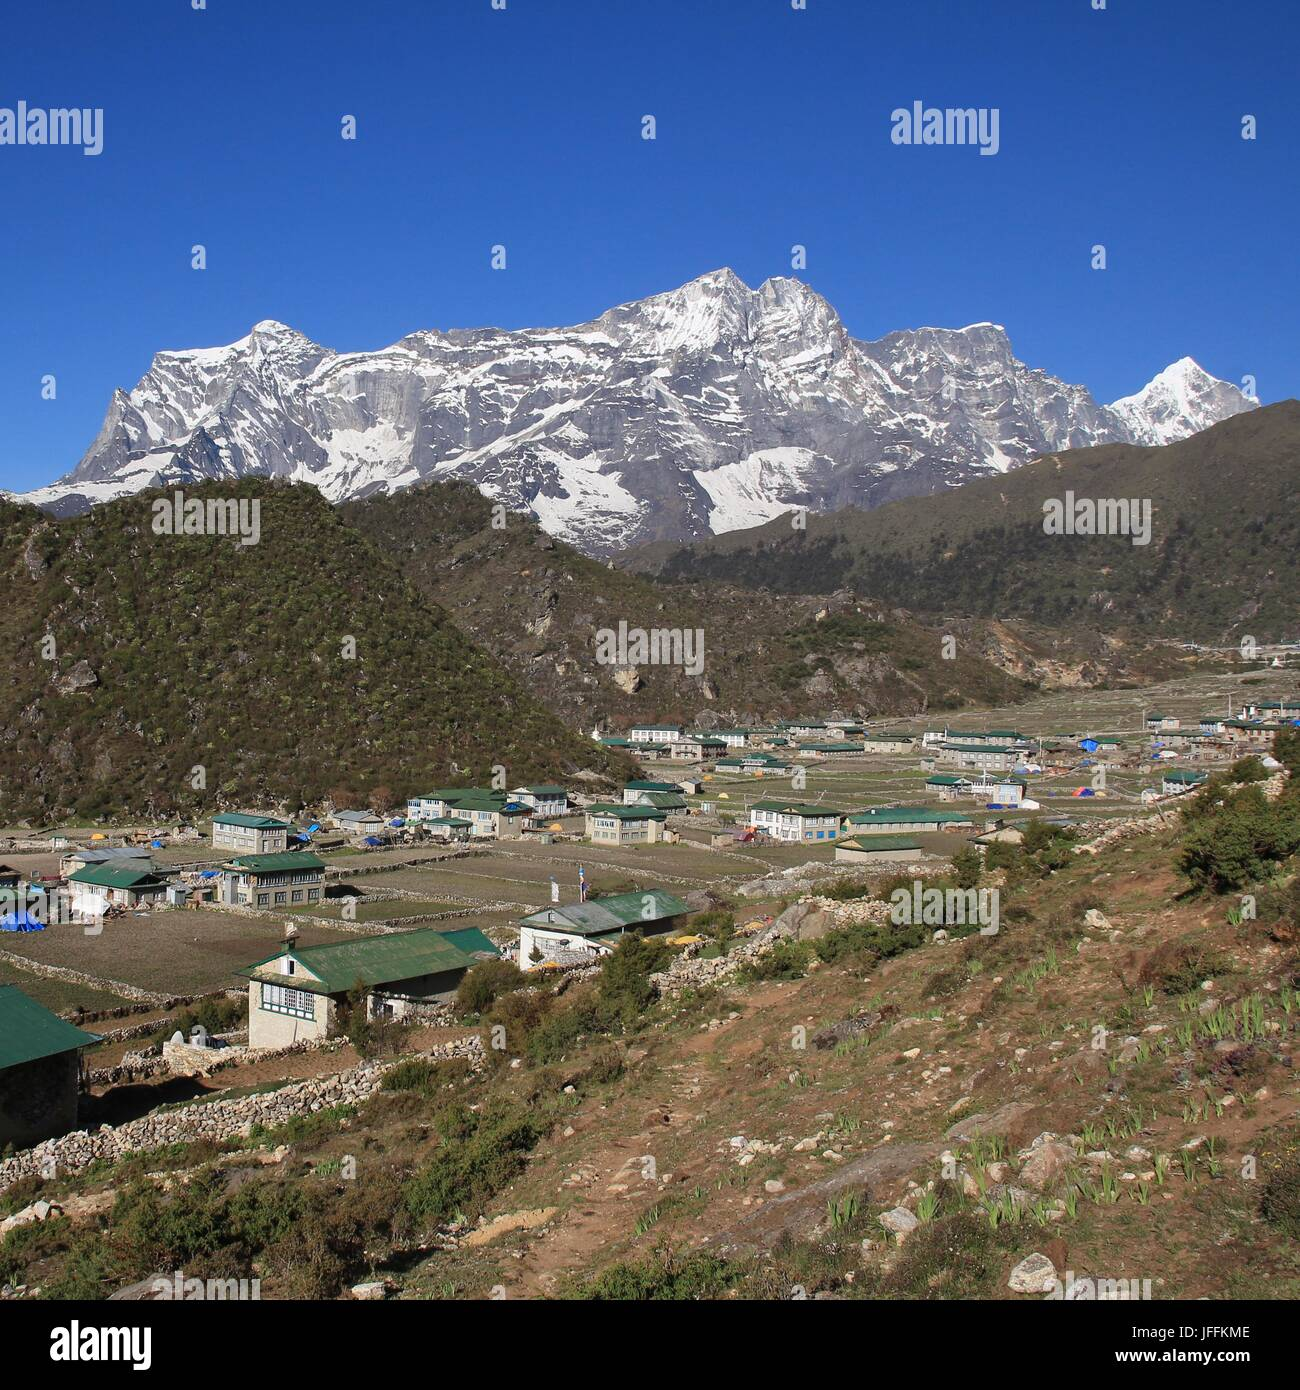 Spring day in Khumjung - Stock Image